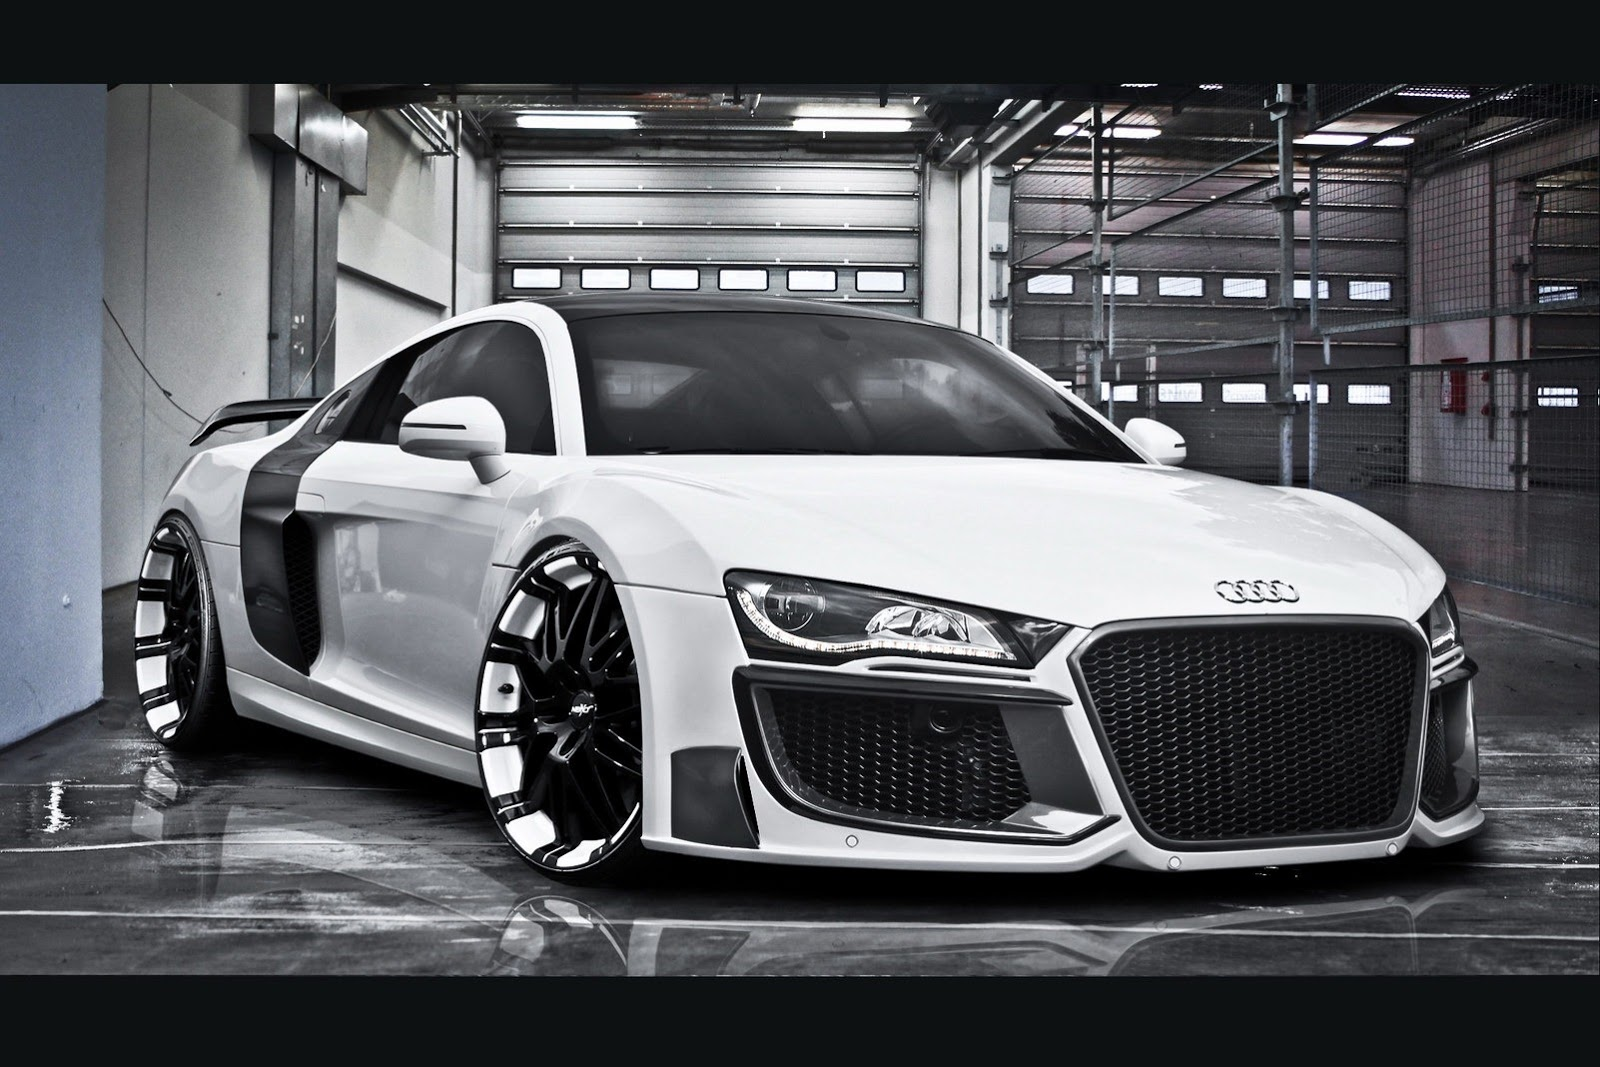 Singapore City Hd Car Audi Images Wallpapers Modified Cars Download